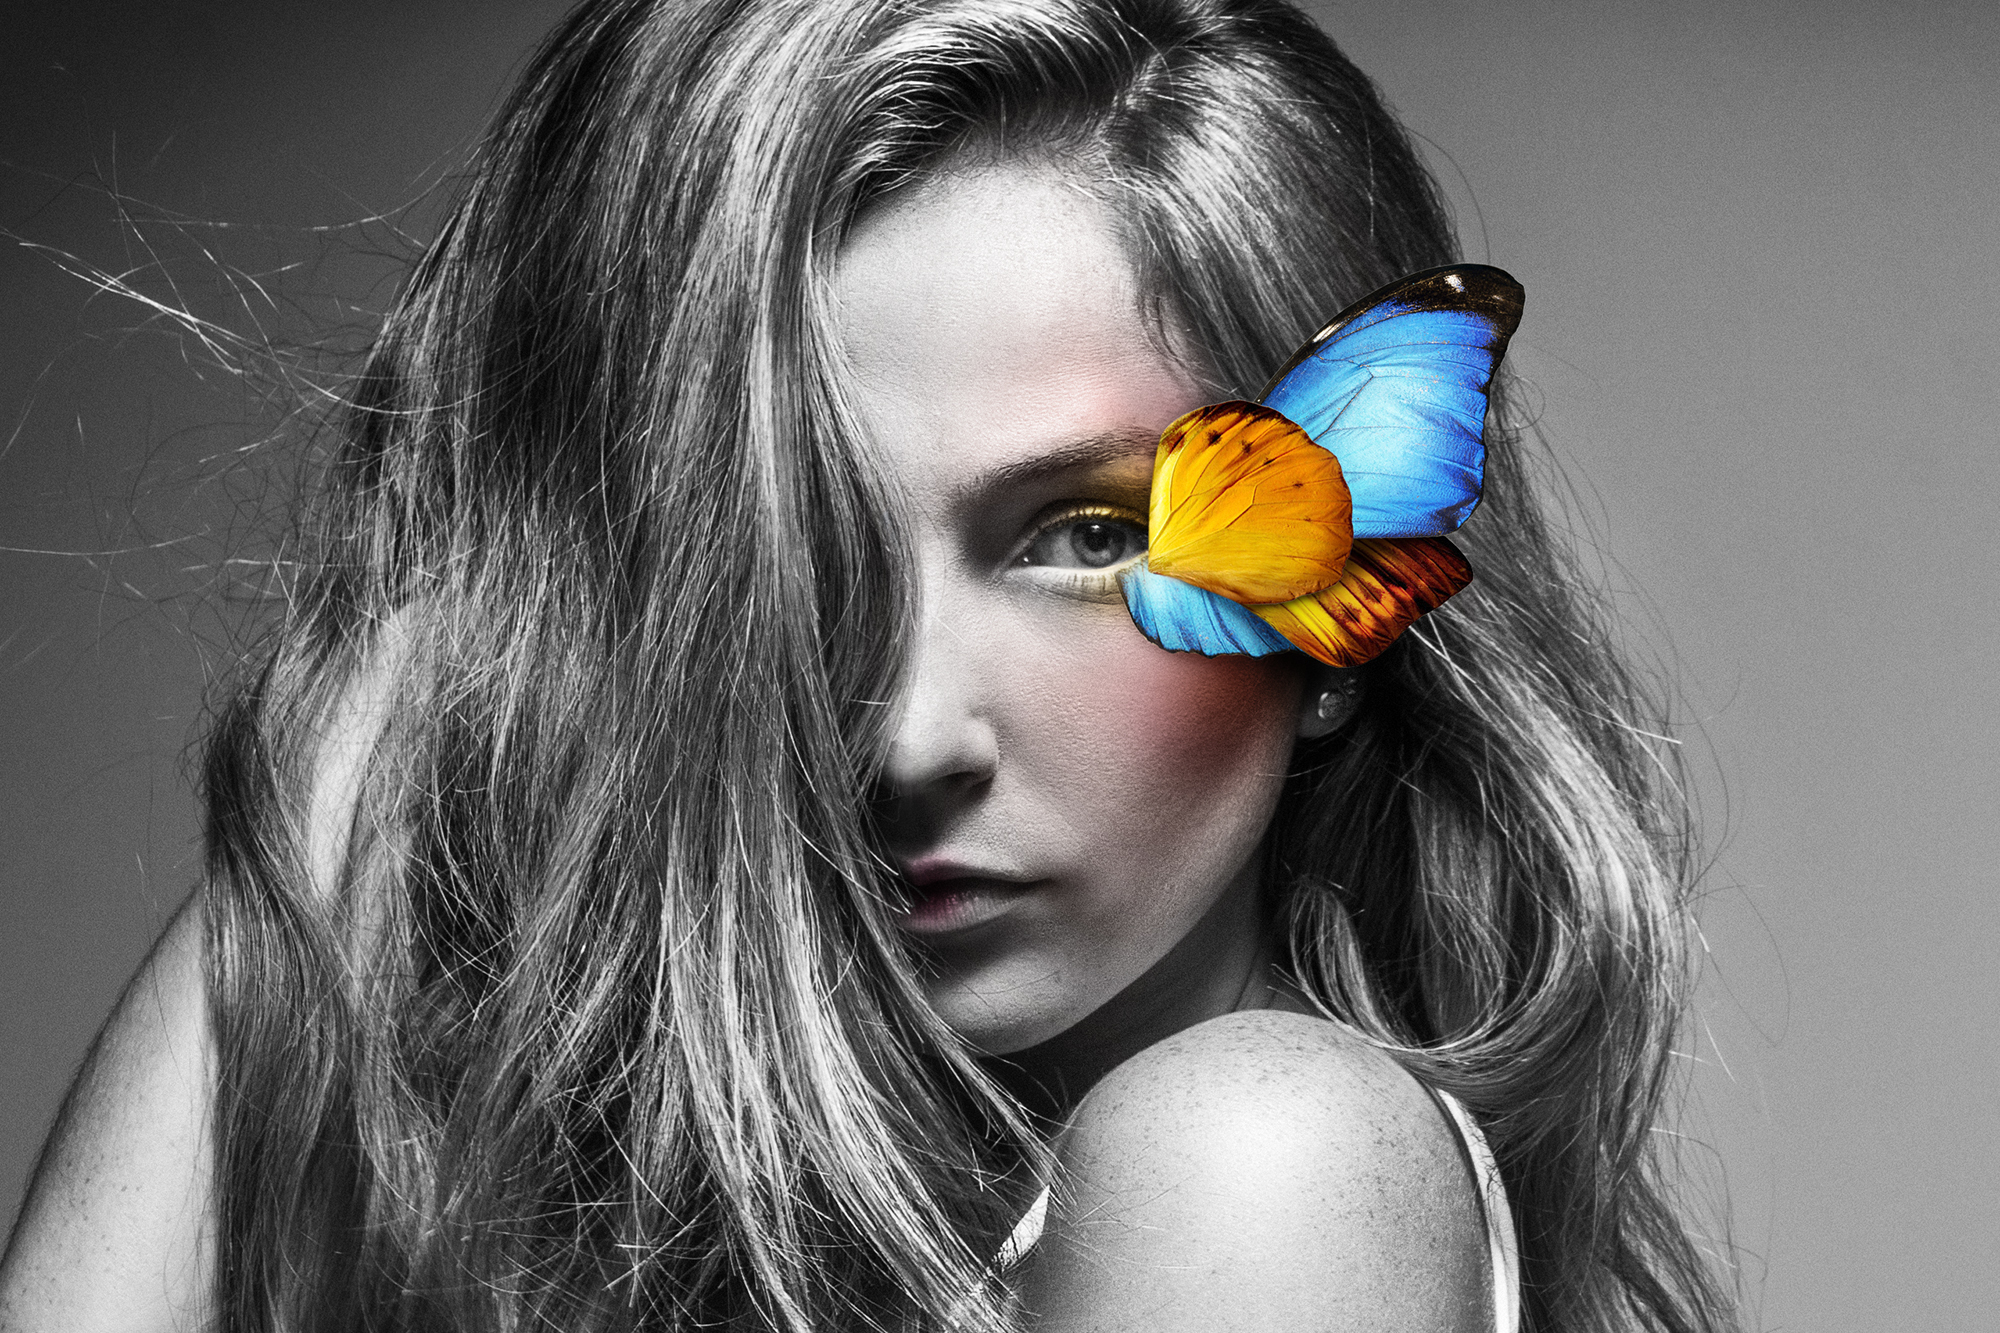 Hailie with Butterfly Wings, 2016